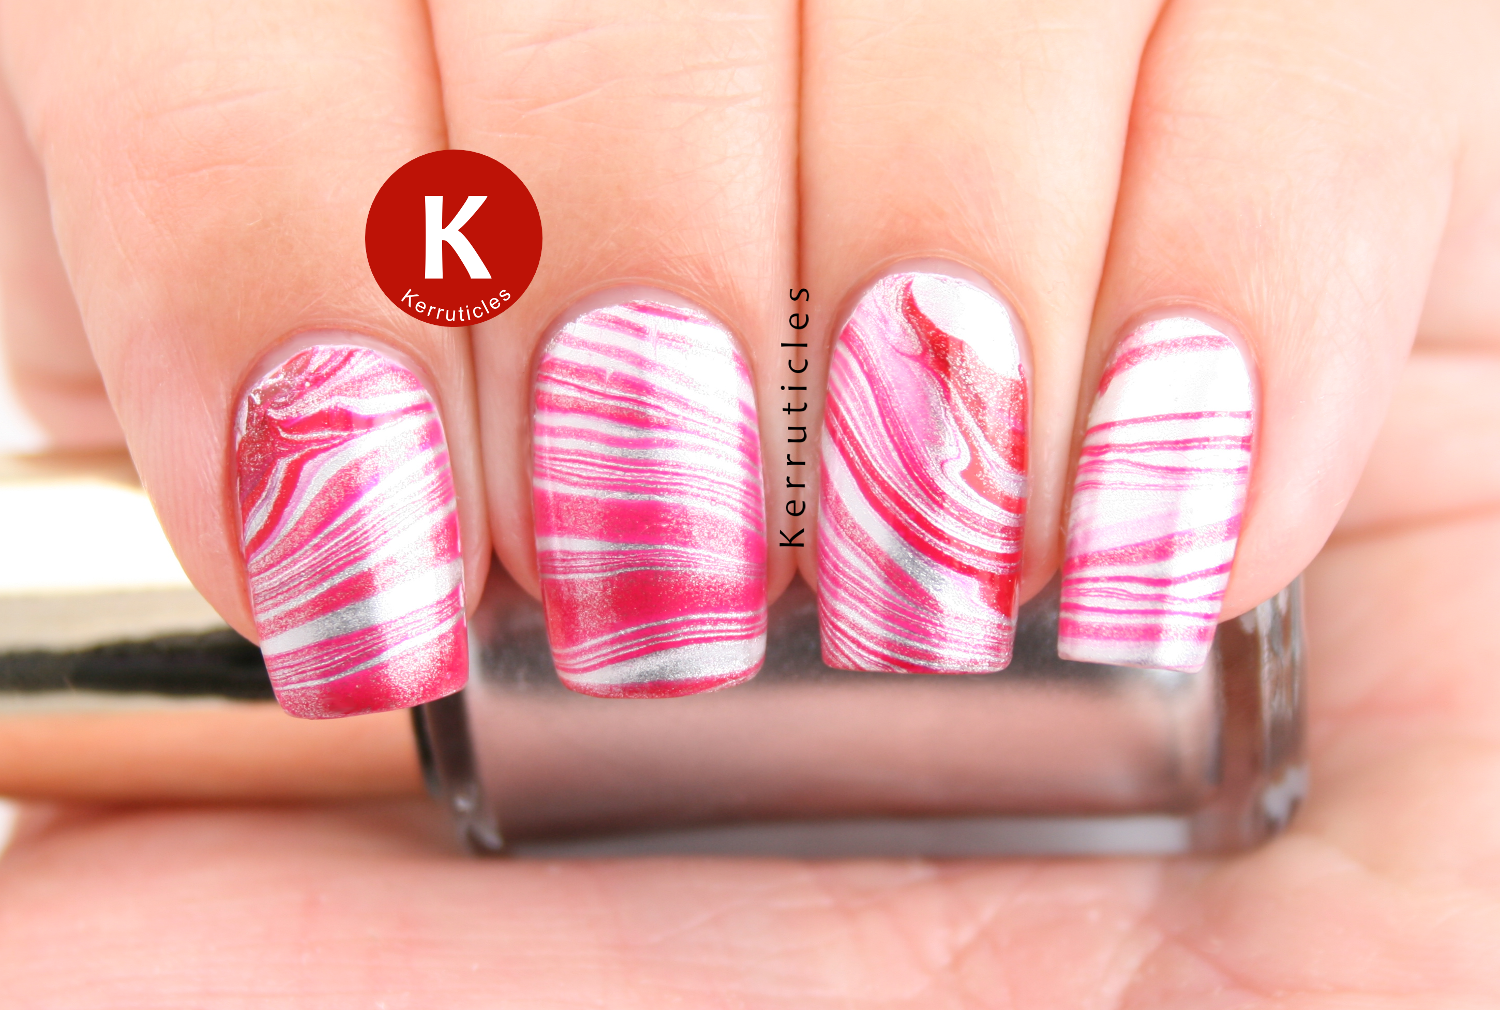 Red and silver water marble using L'Oréal Femme Fatale and Sublime Platine